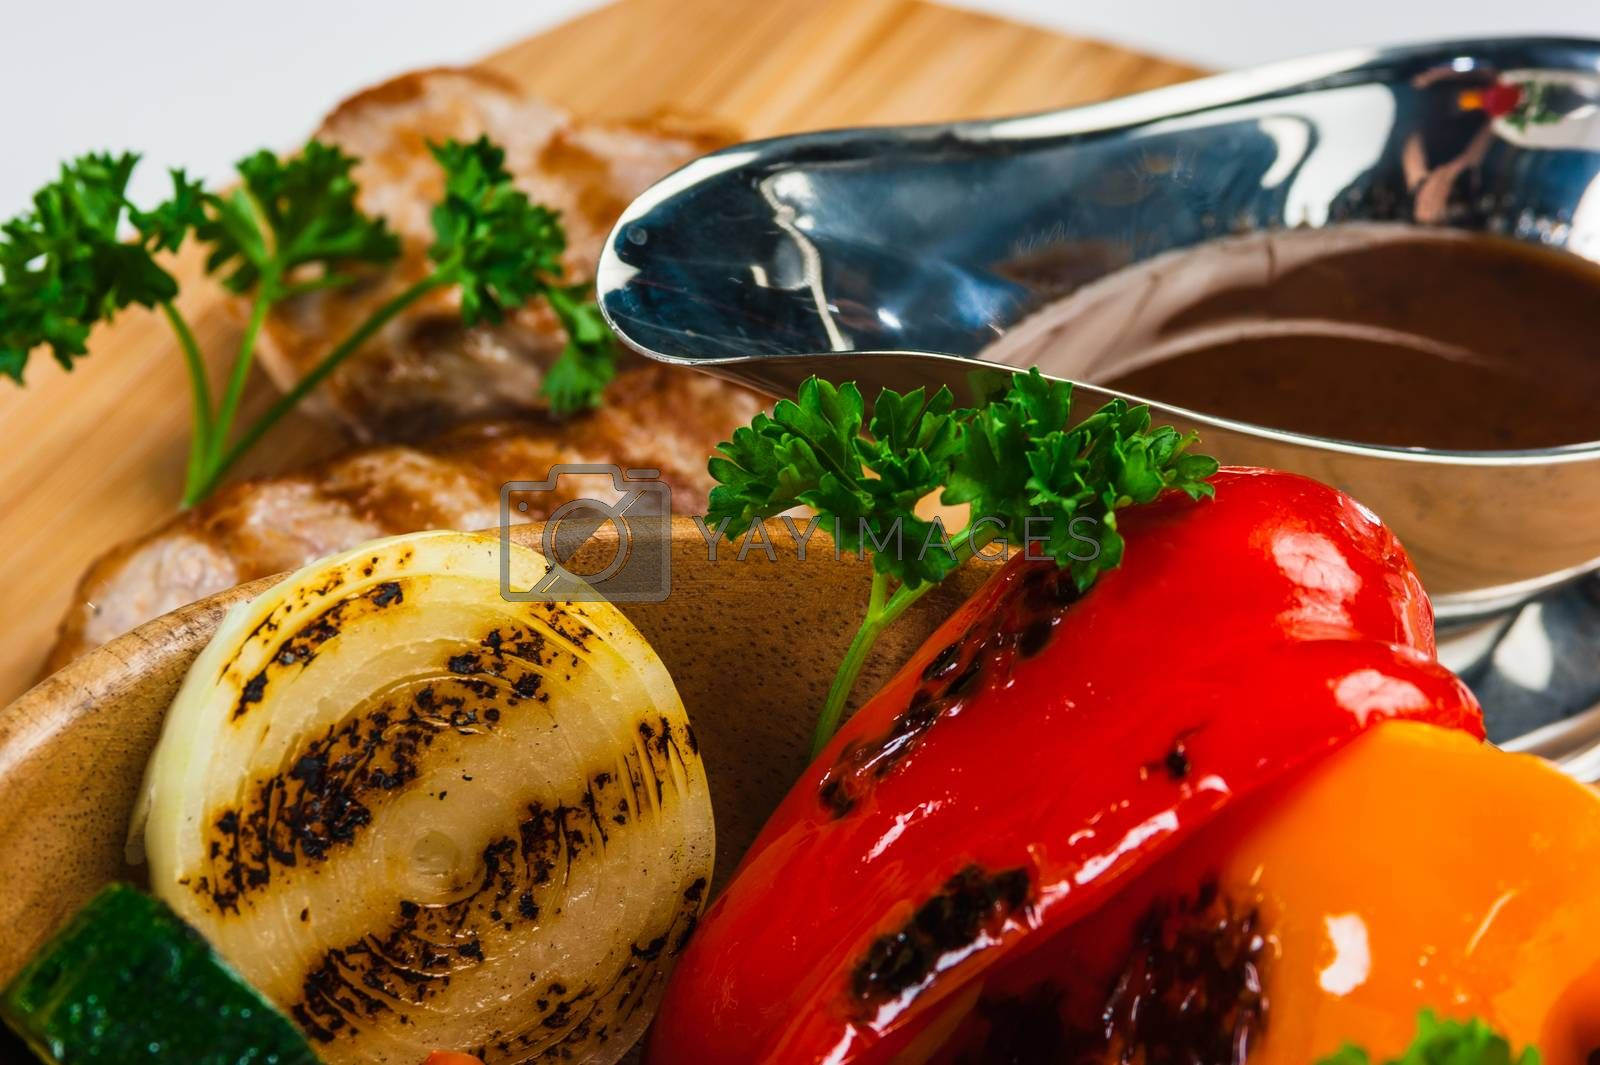 Royalty free image of Grilled pork with baked vegetables by oleg_zhukov